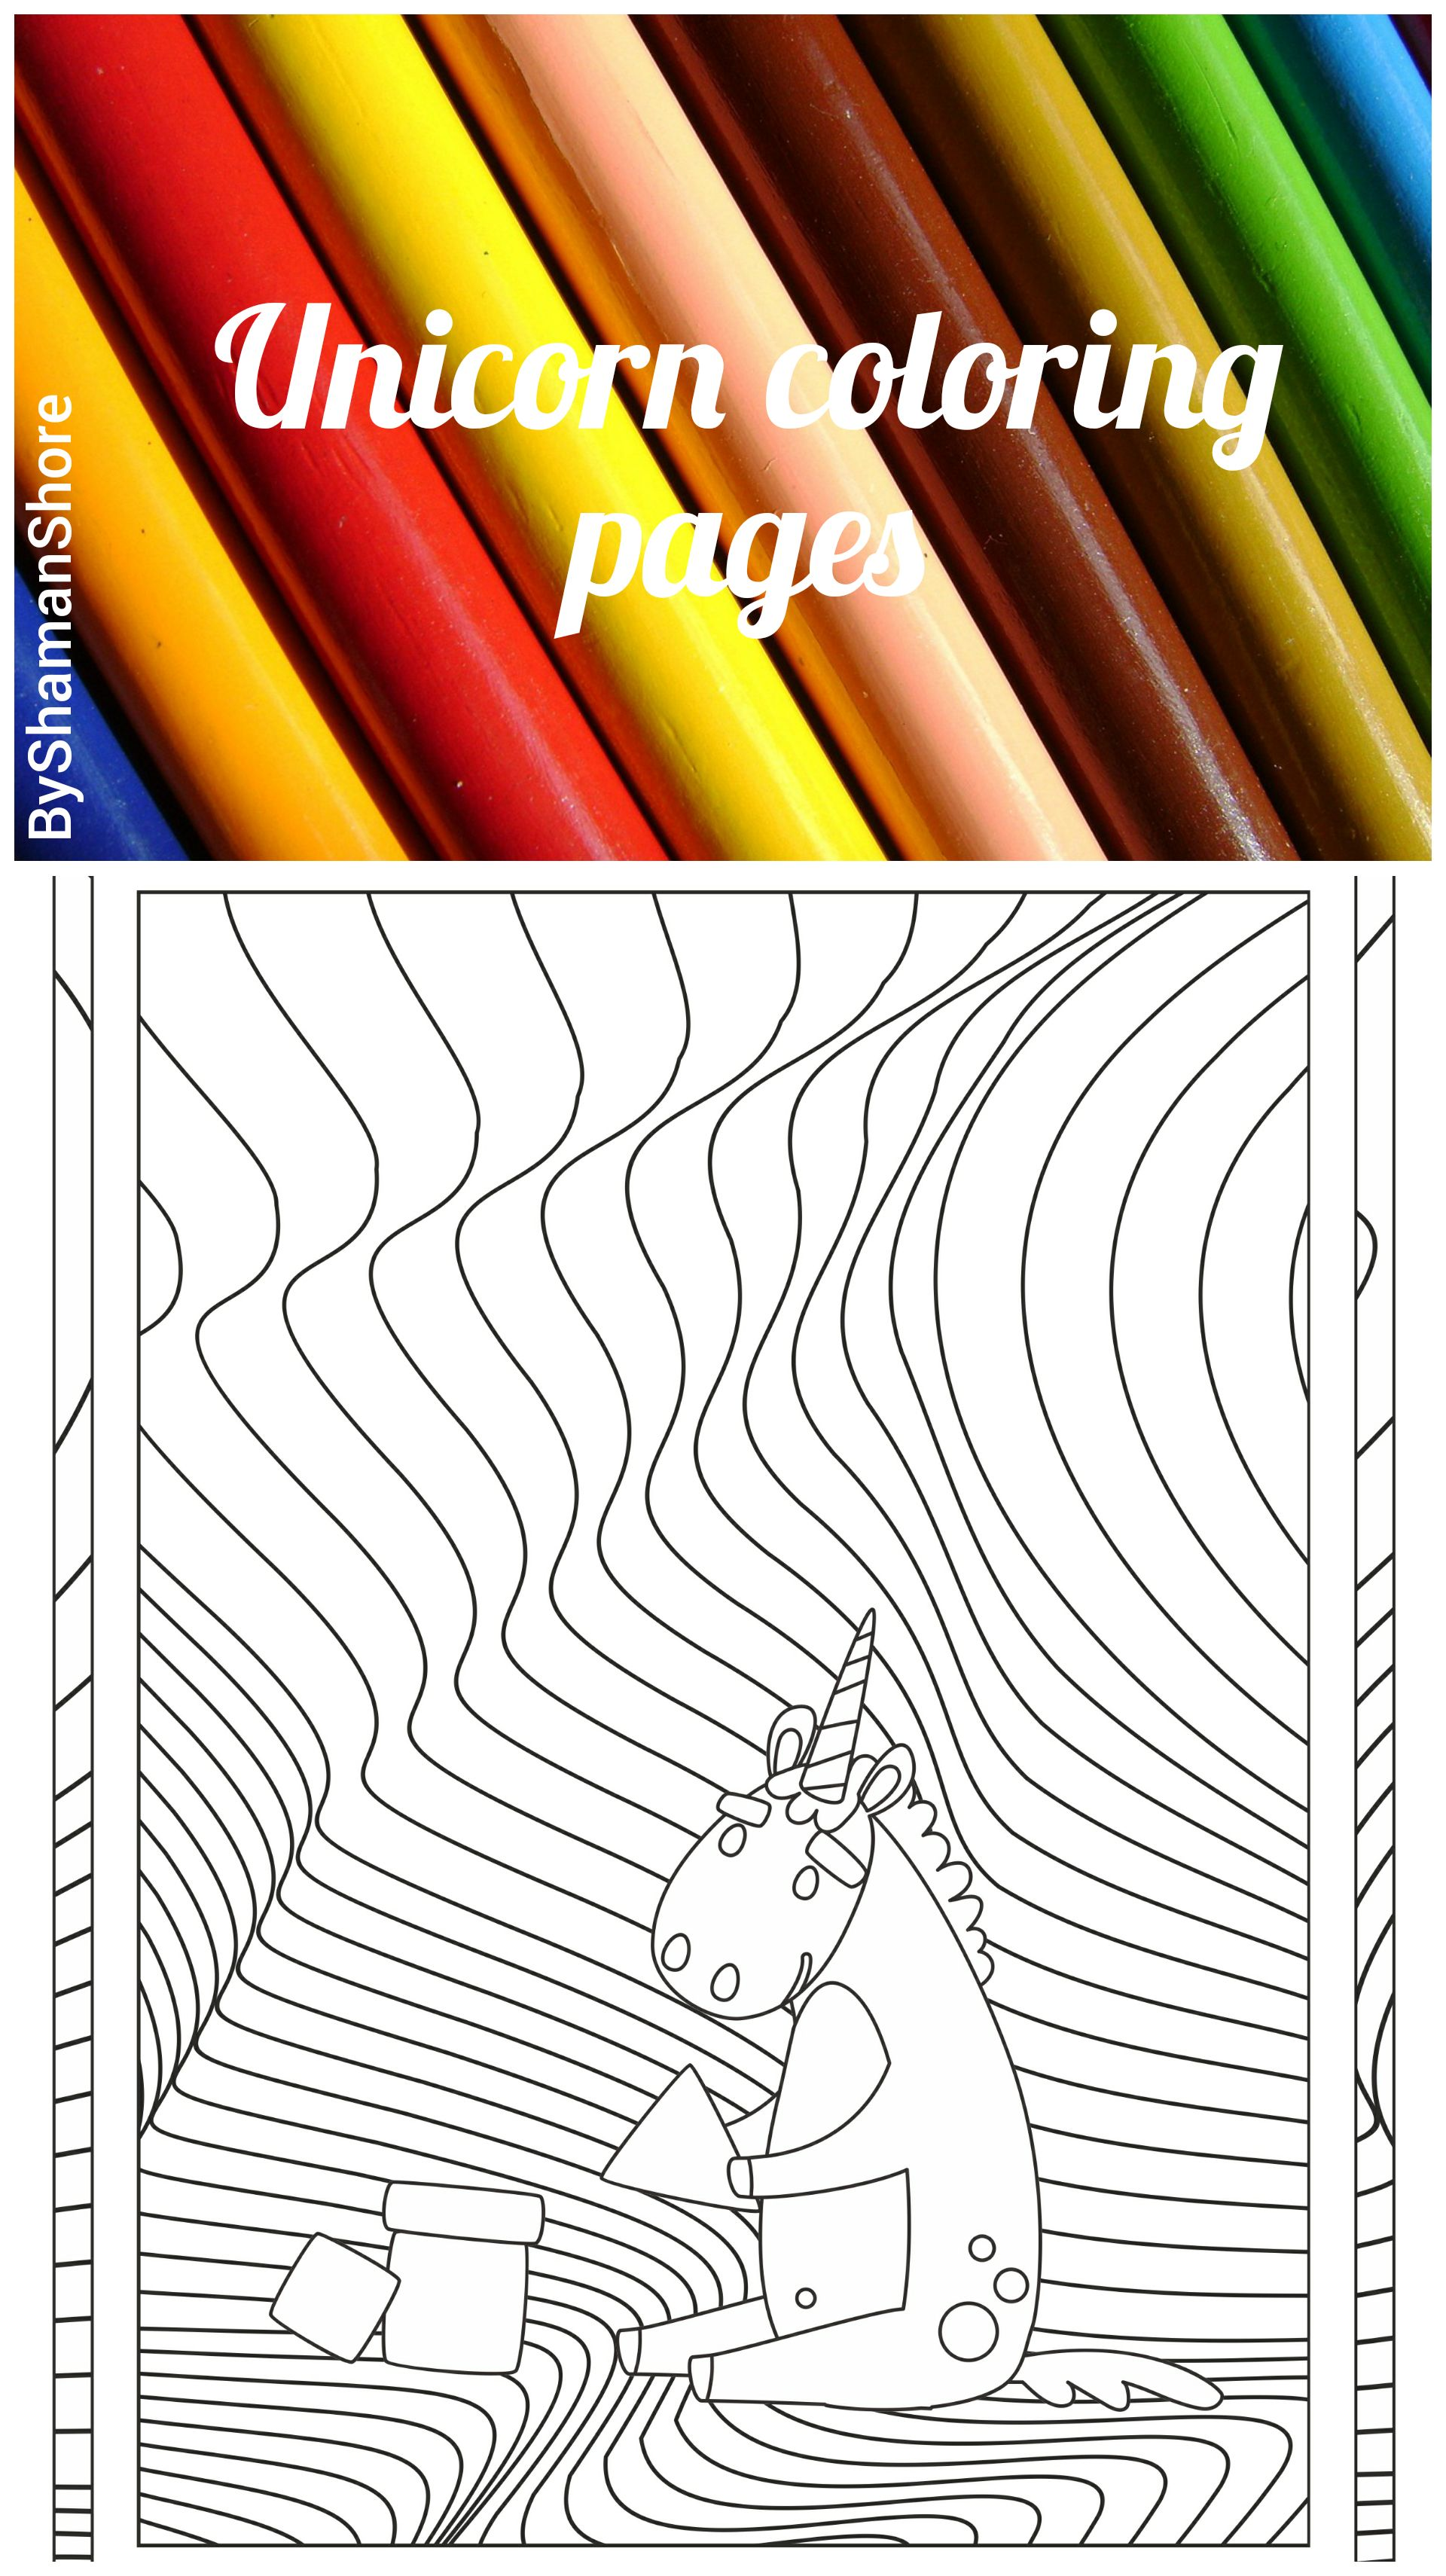 Digital Adult Coloring Book Pdf, 20 Unicorn Adult Coloring Pages ...